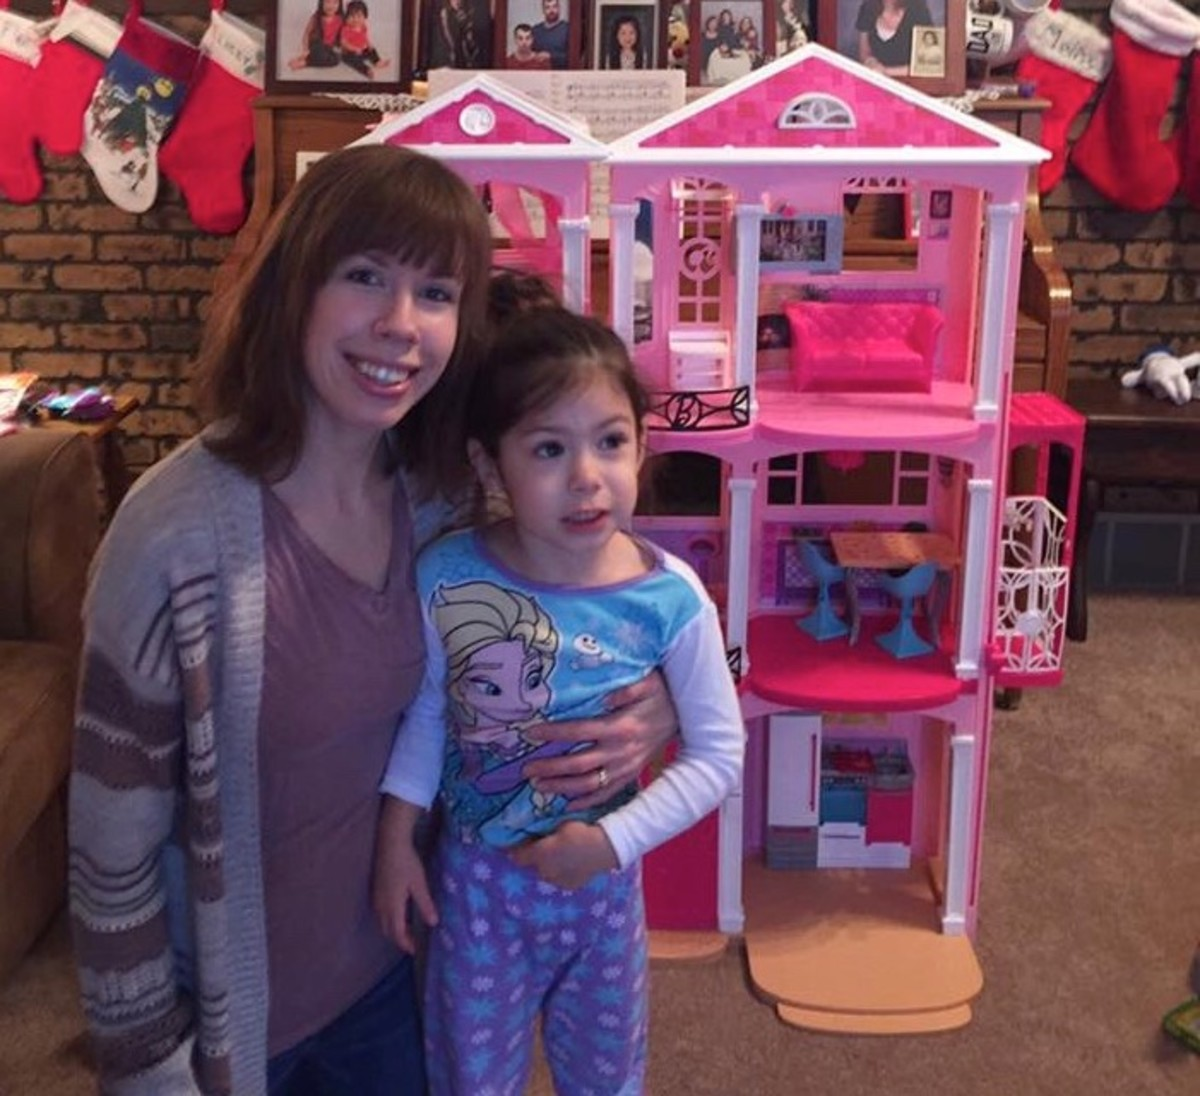 The Barbie Dreamhouse was my daughter's favorite Christmas gift of all time.